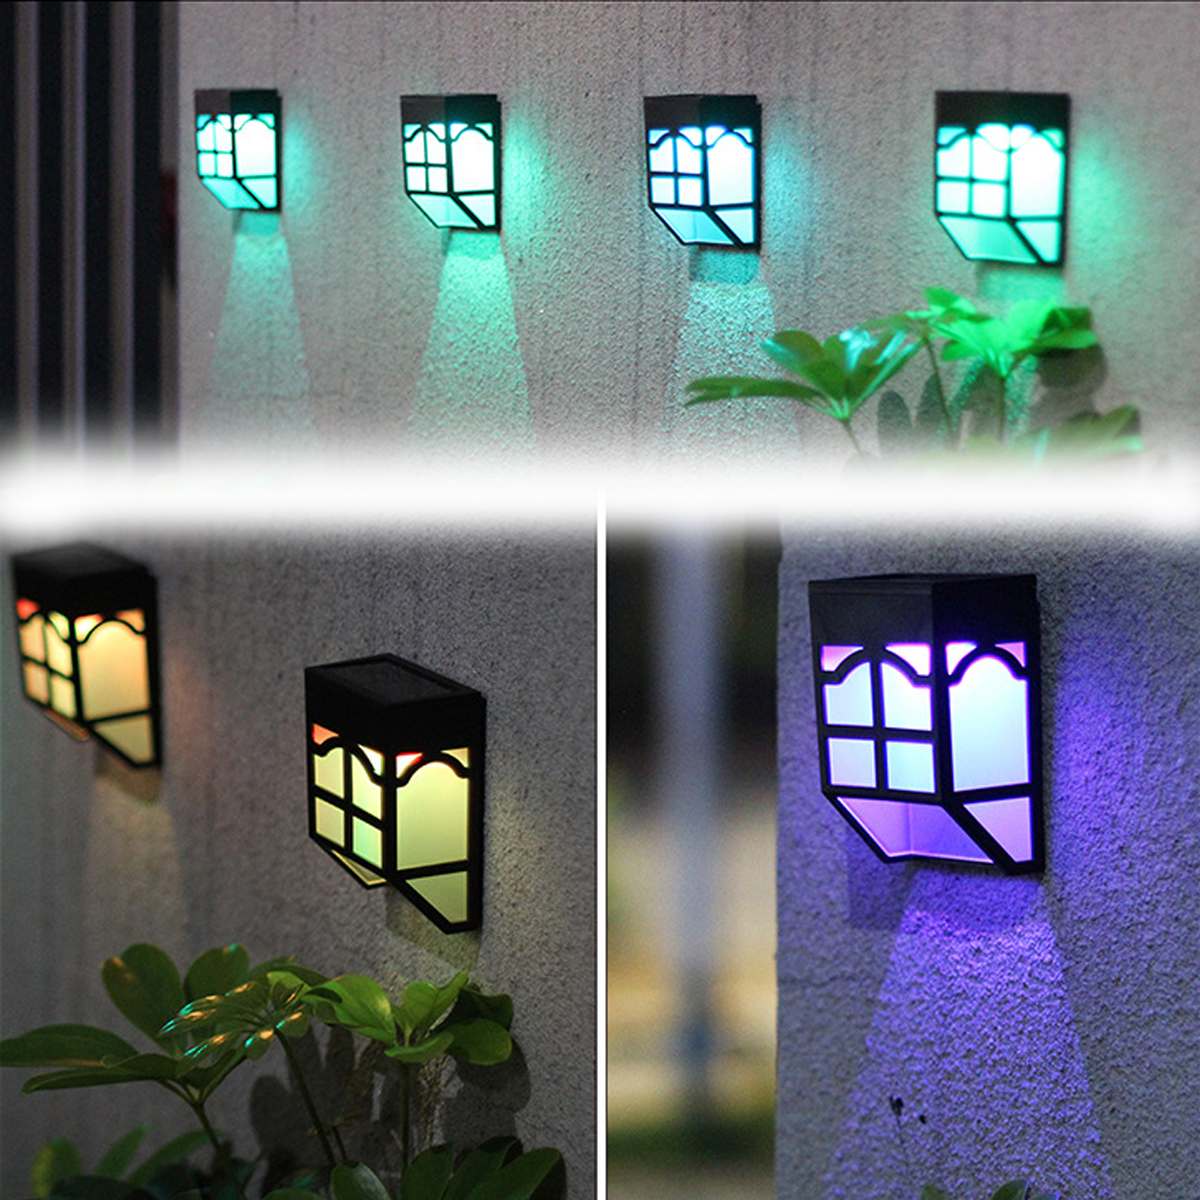 Outdoor Solar Garden Light LED Path Wall Landscape Mount Light Fence Lantern Street Lamp